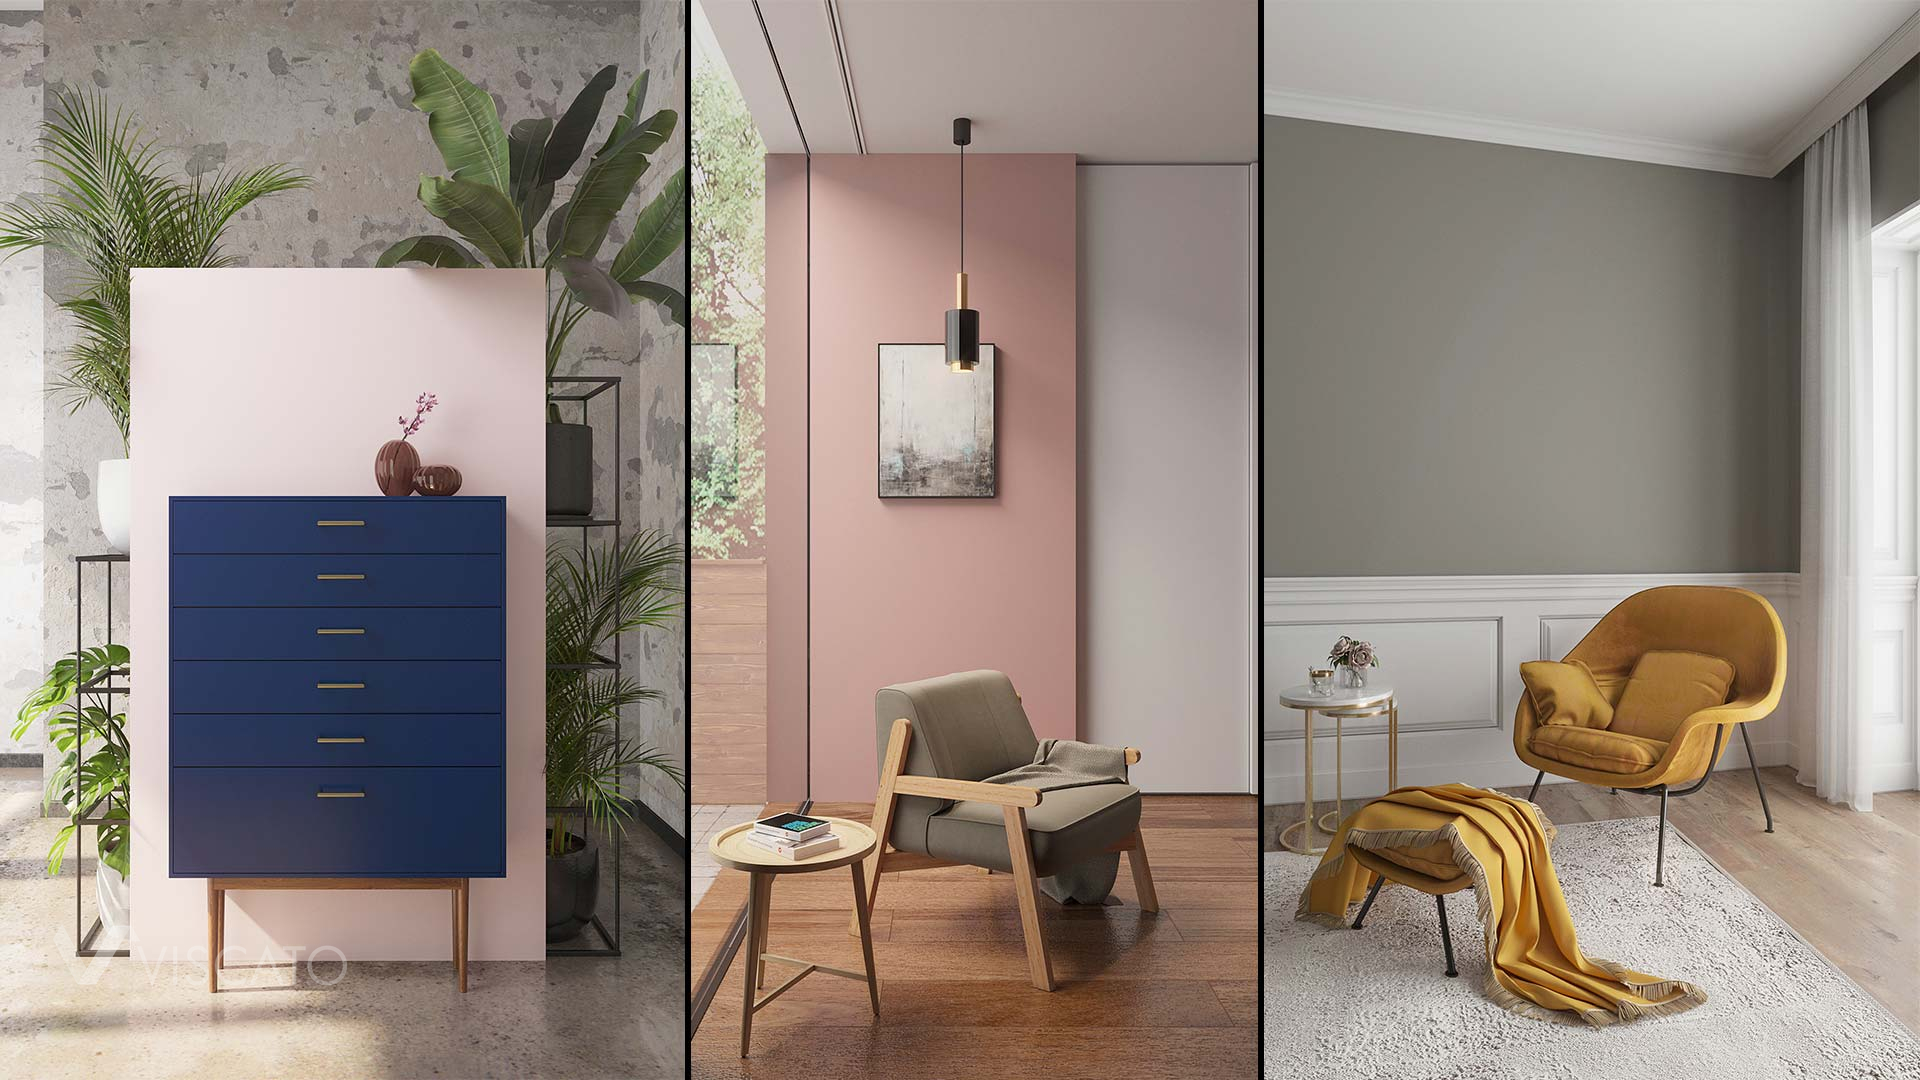 Styled compact furniture, Viscato 3D